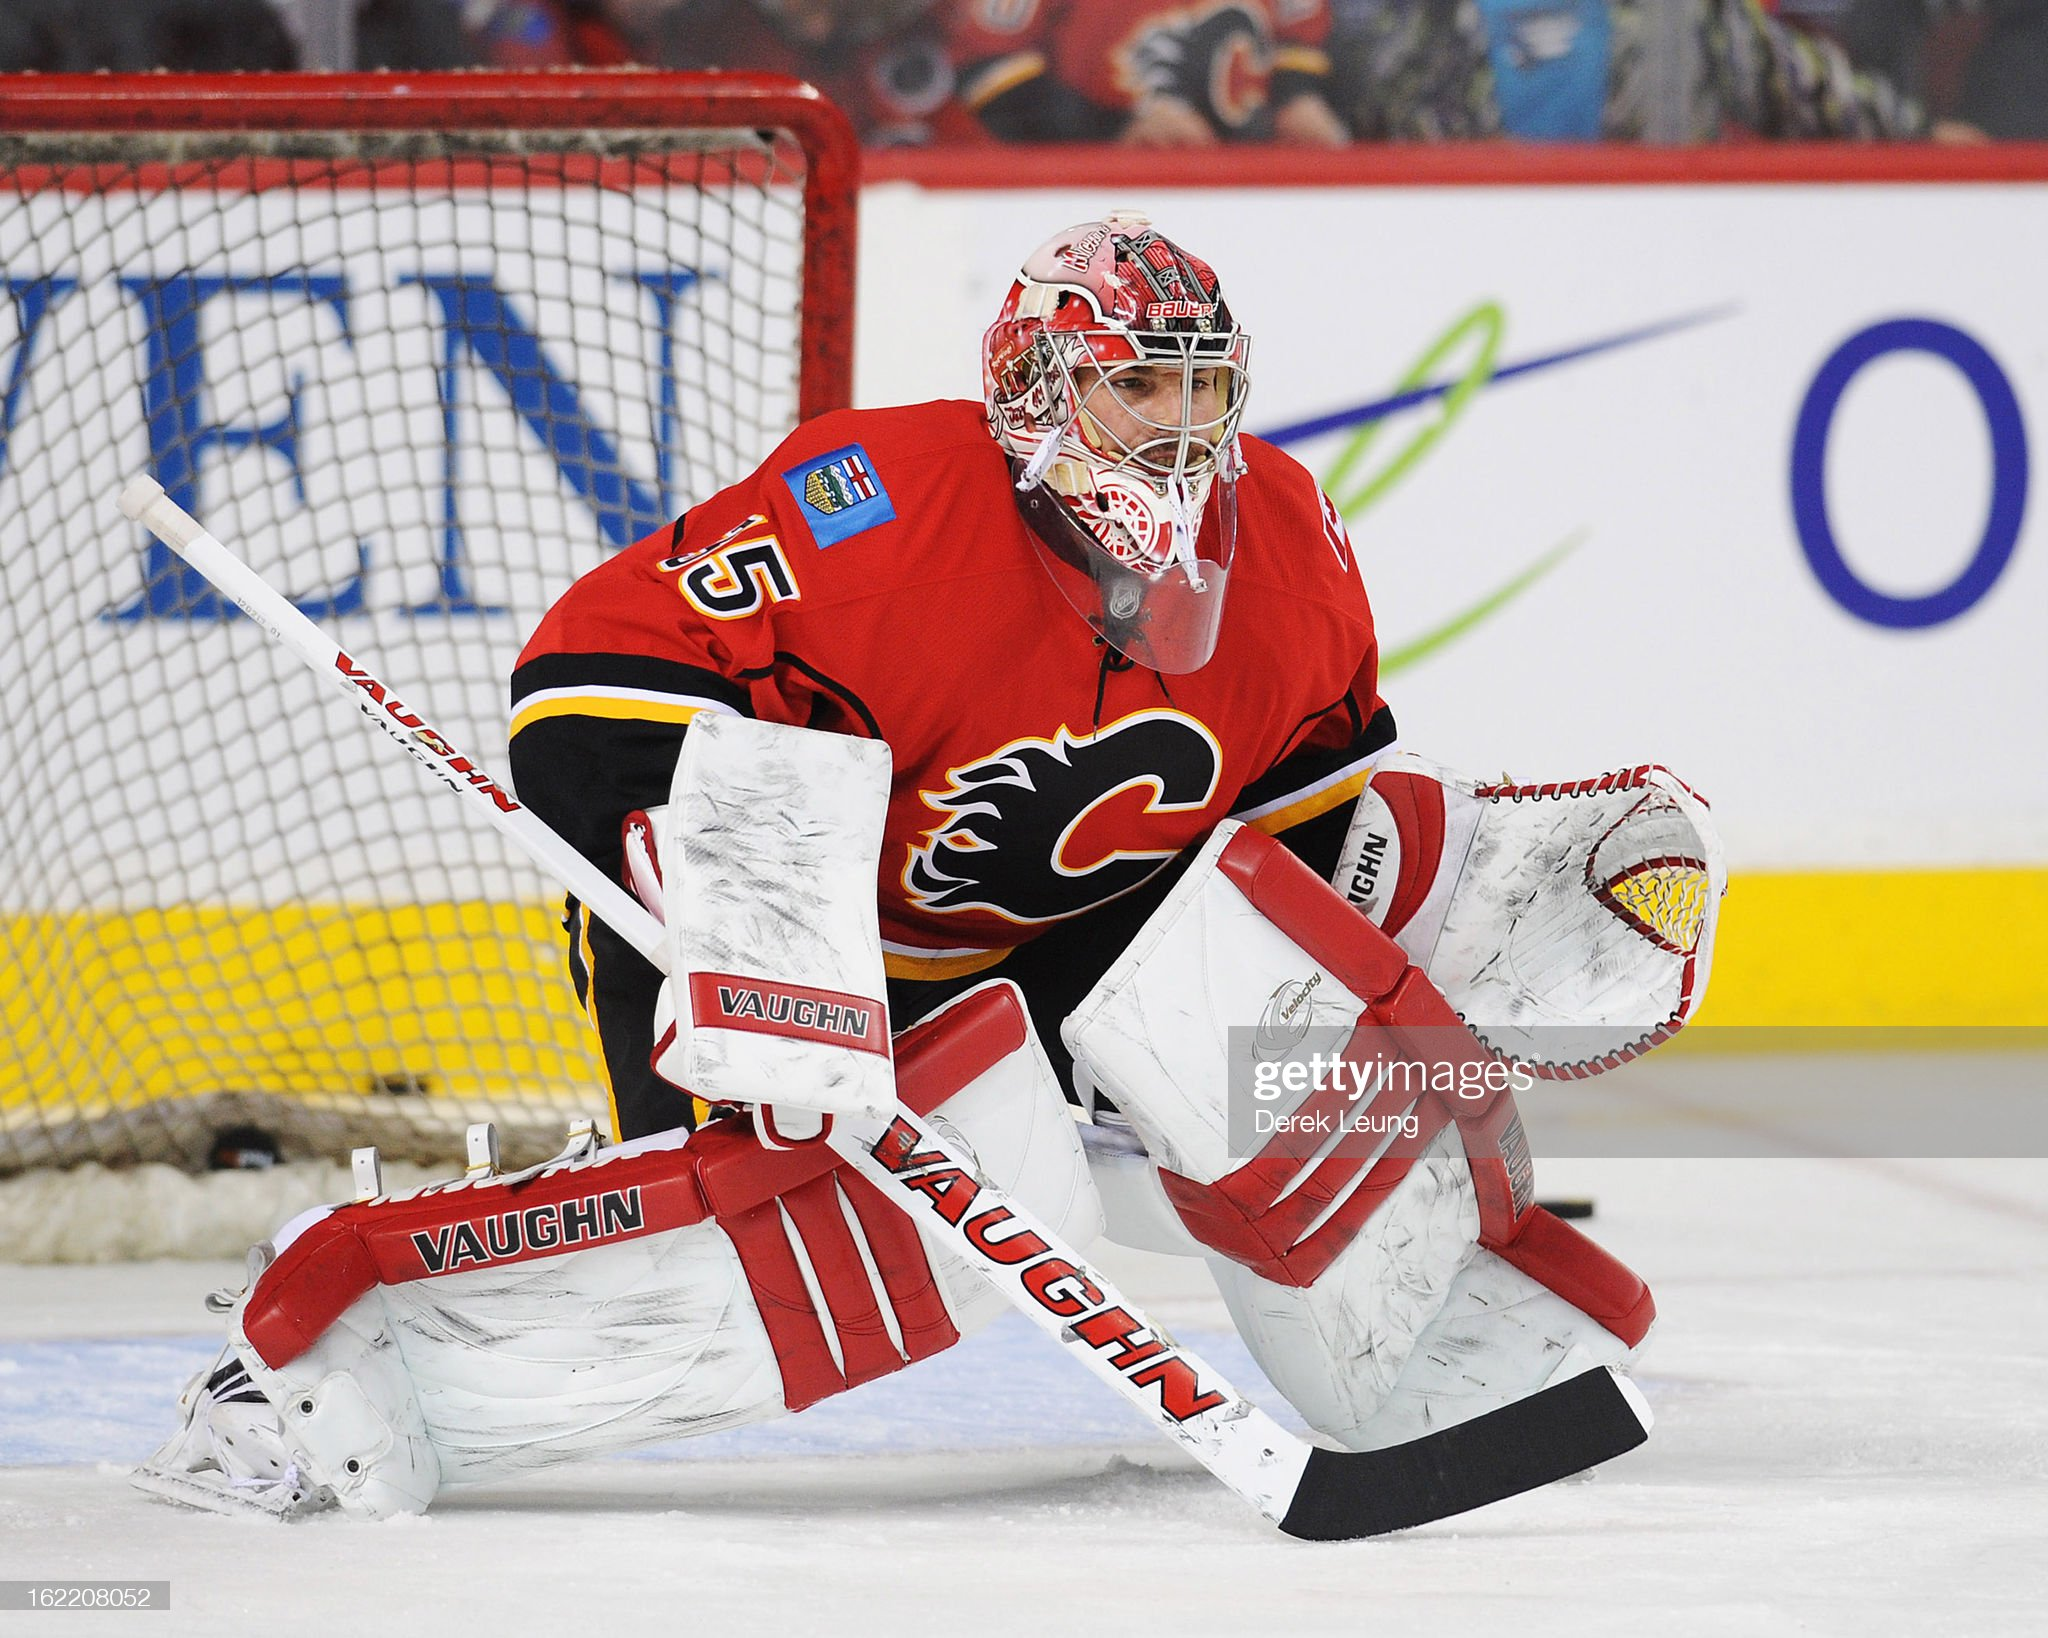 joey-macdonald-of-the-calgary-flames-str